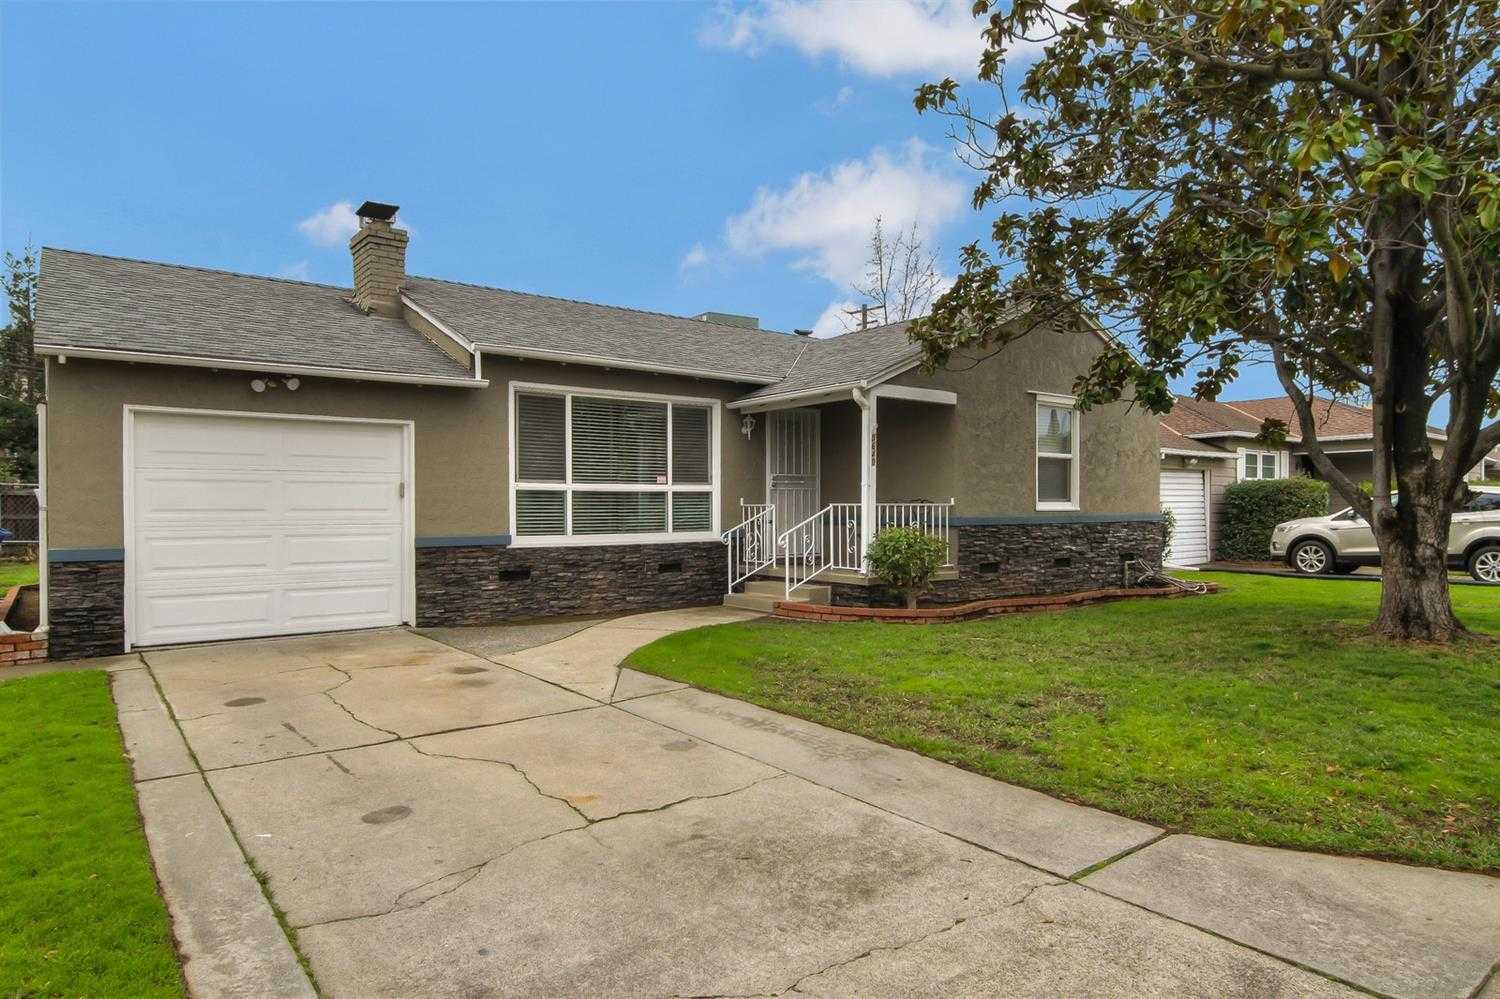 5640 34th Ave Sacramento, CA 95824